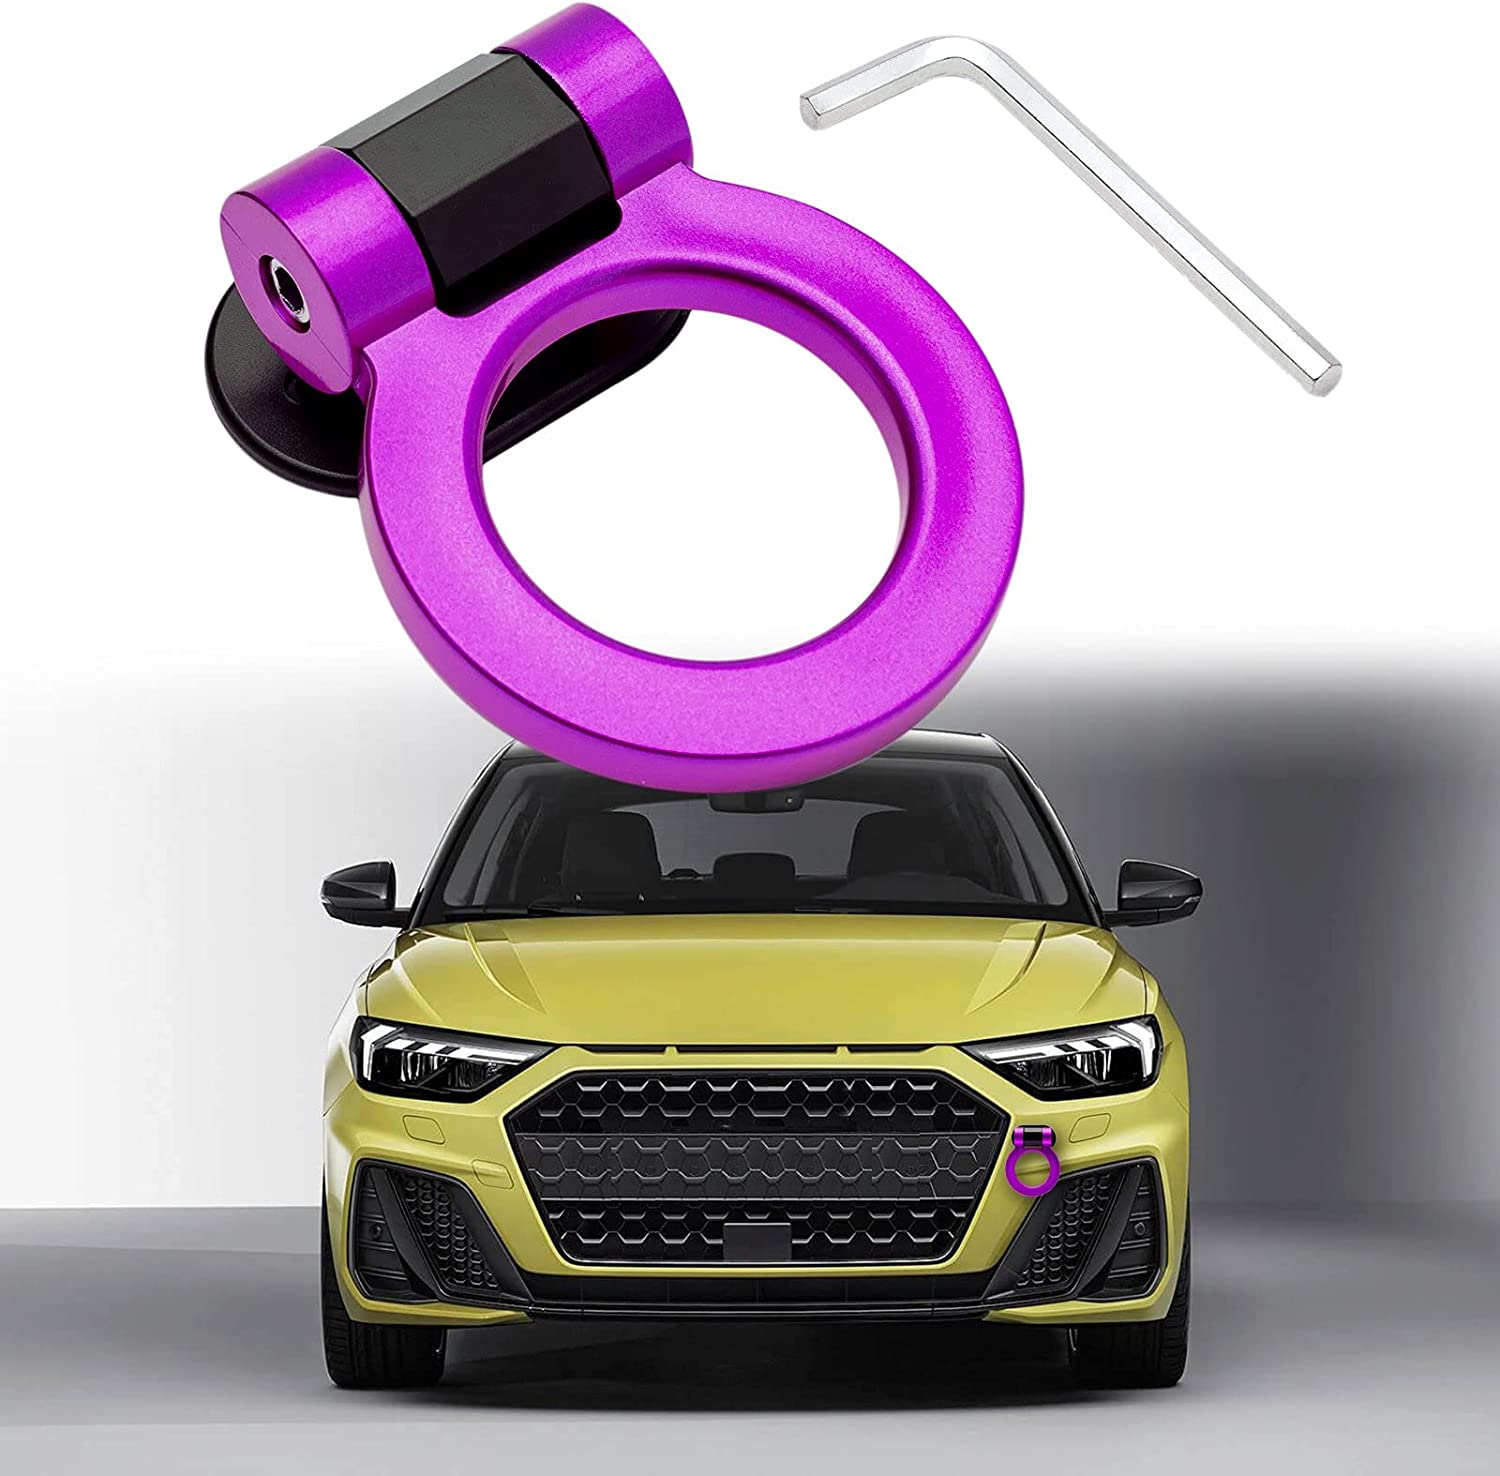 Xotic Tech Max 44% OFF Universal Purple JDM Free Shipping Cheap Bargain Gift Track Hook Ring Tow Style Racing